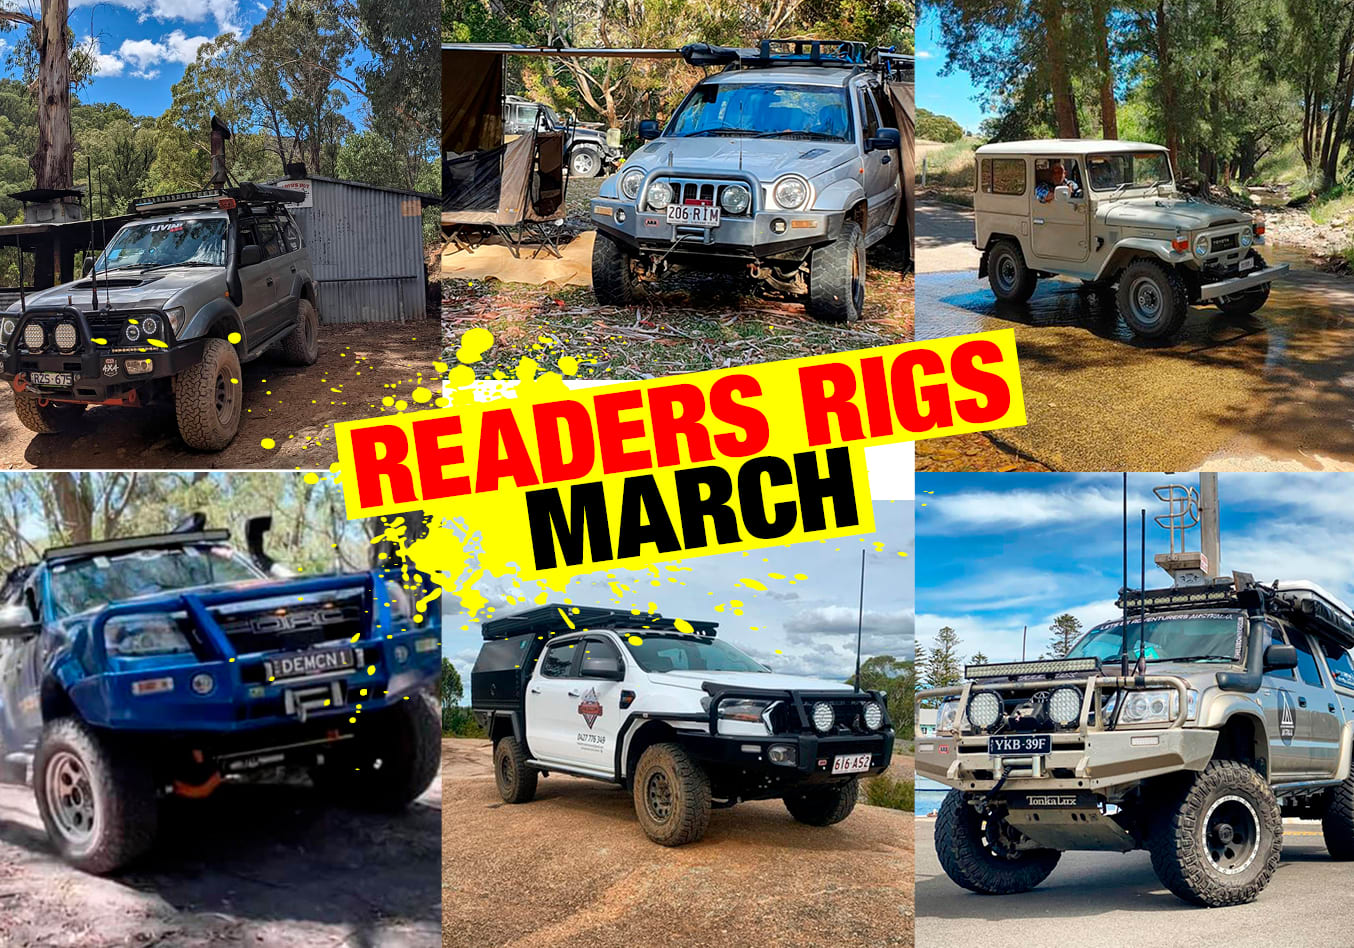 Readers 4x4s March 2021